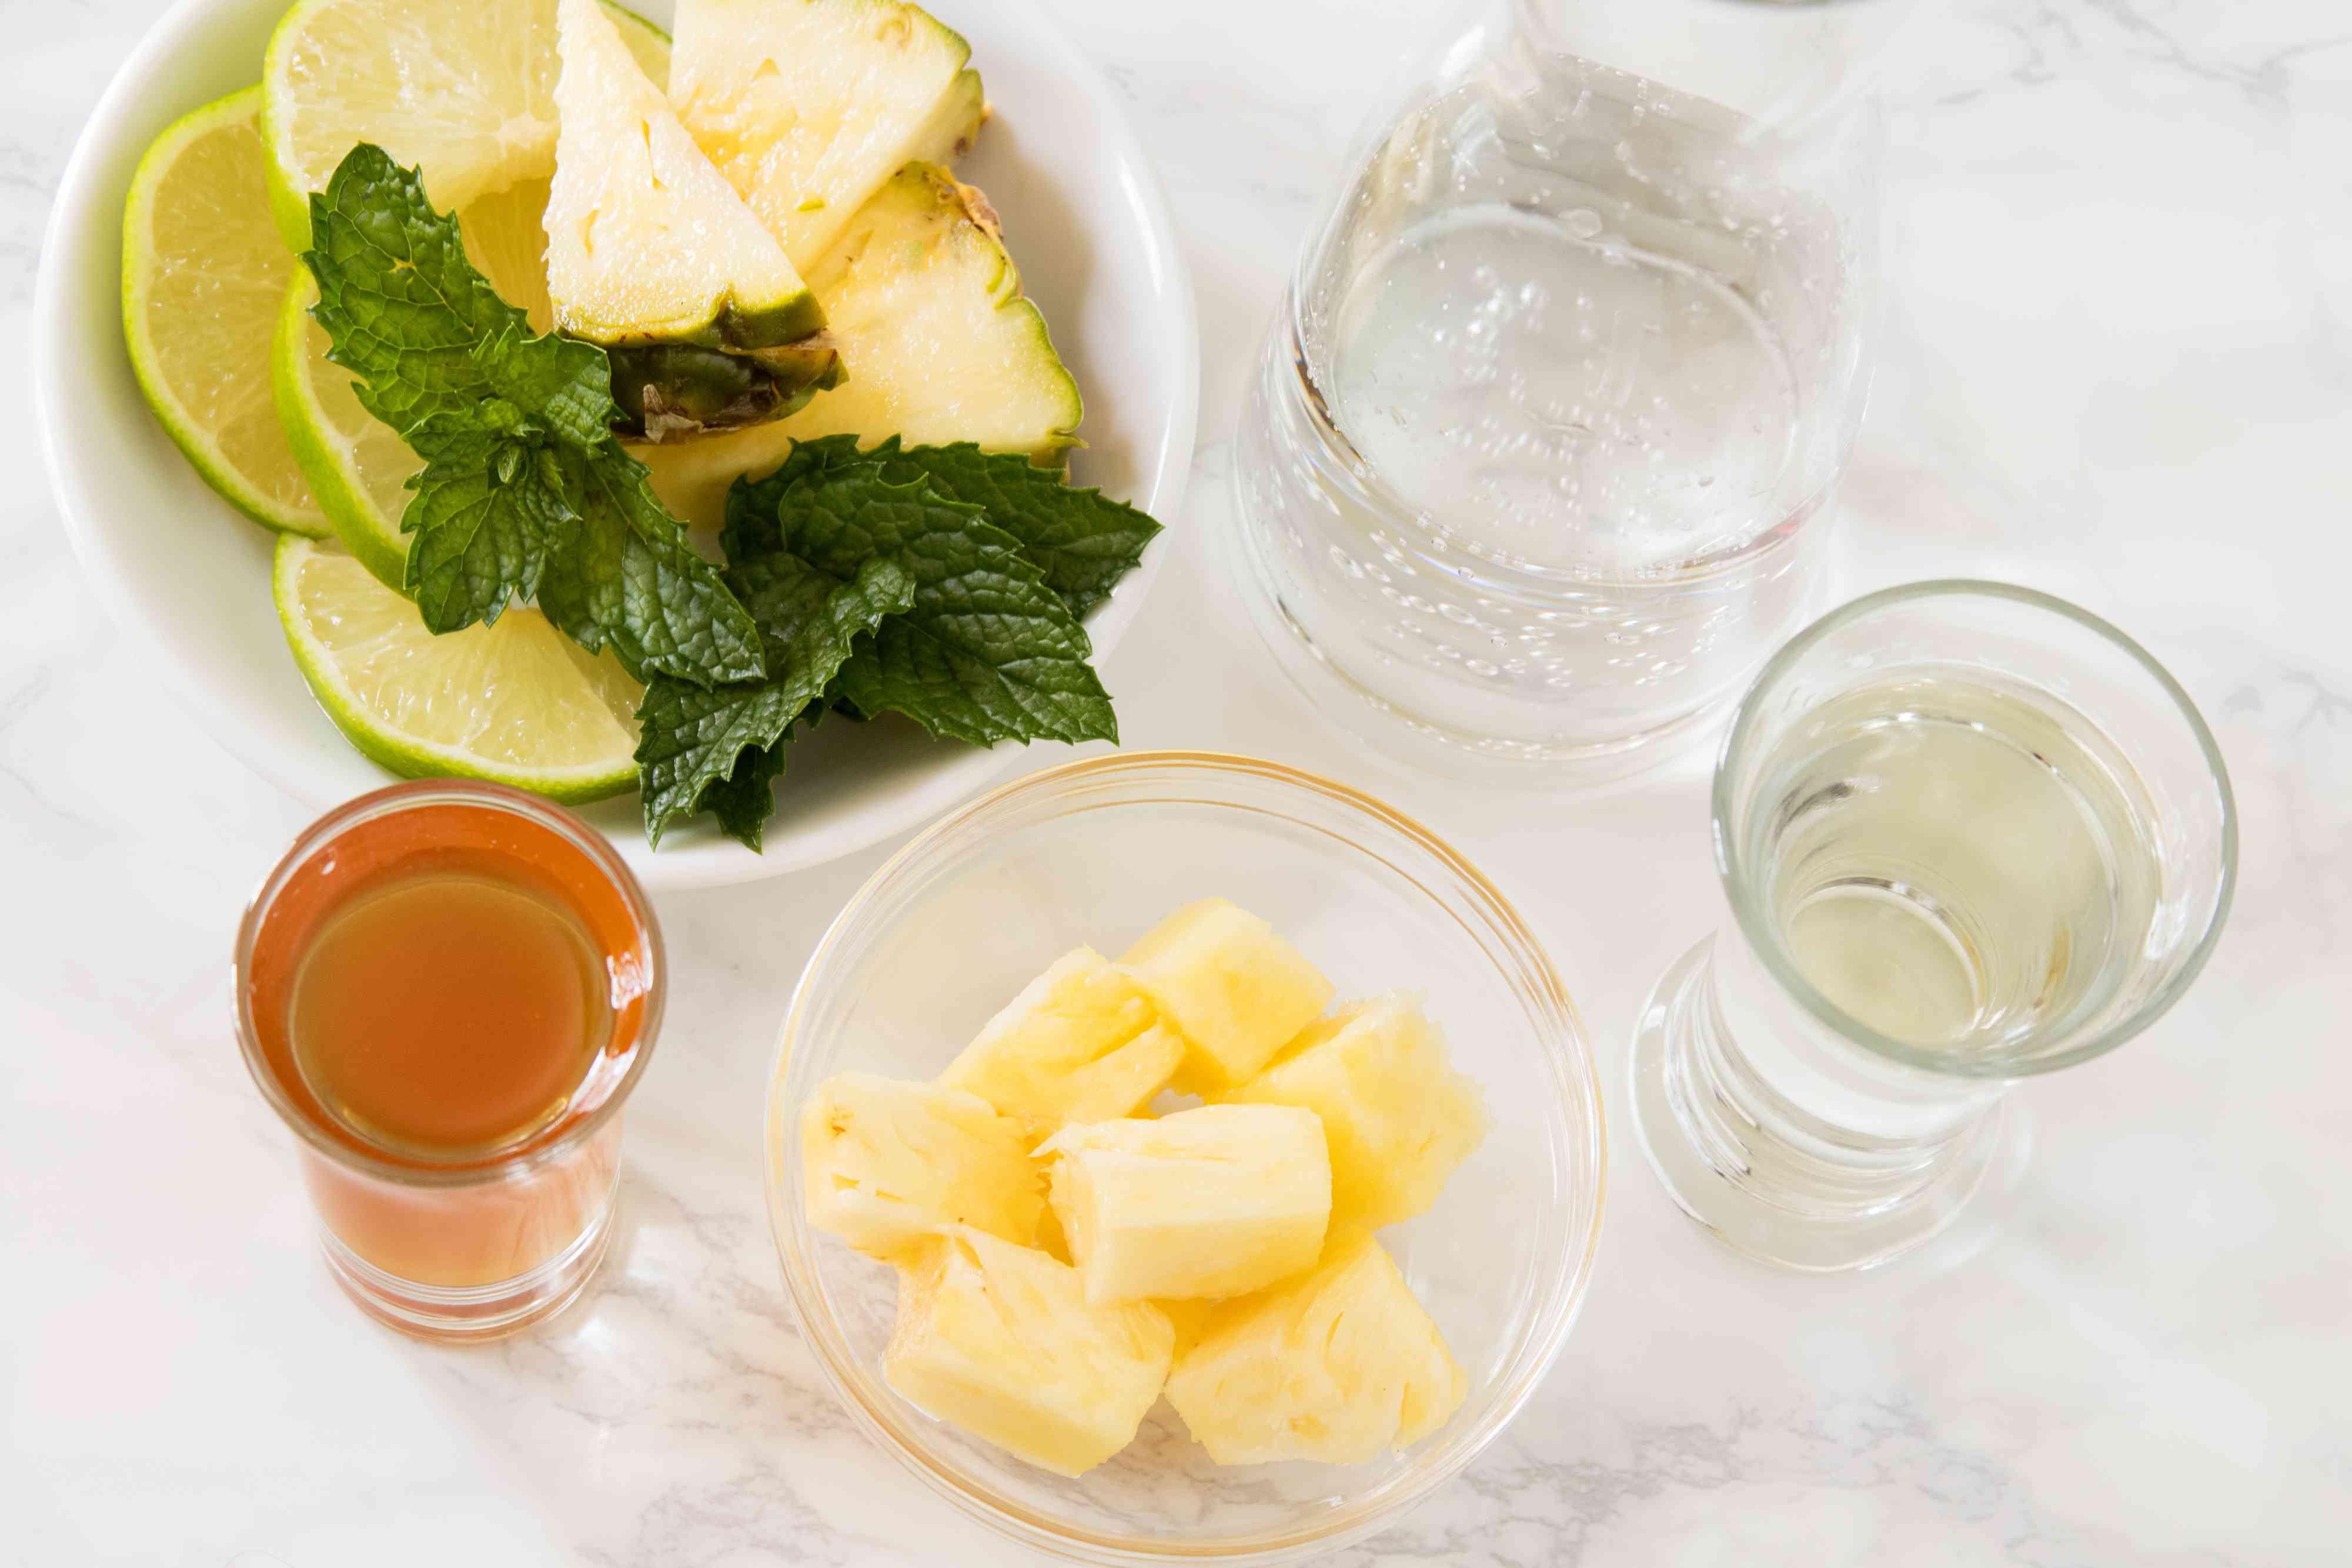 Ingredients for a Pineapple Mojito